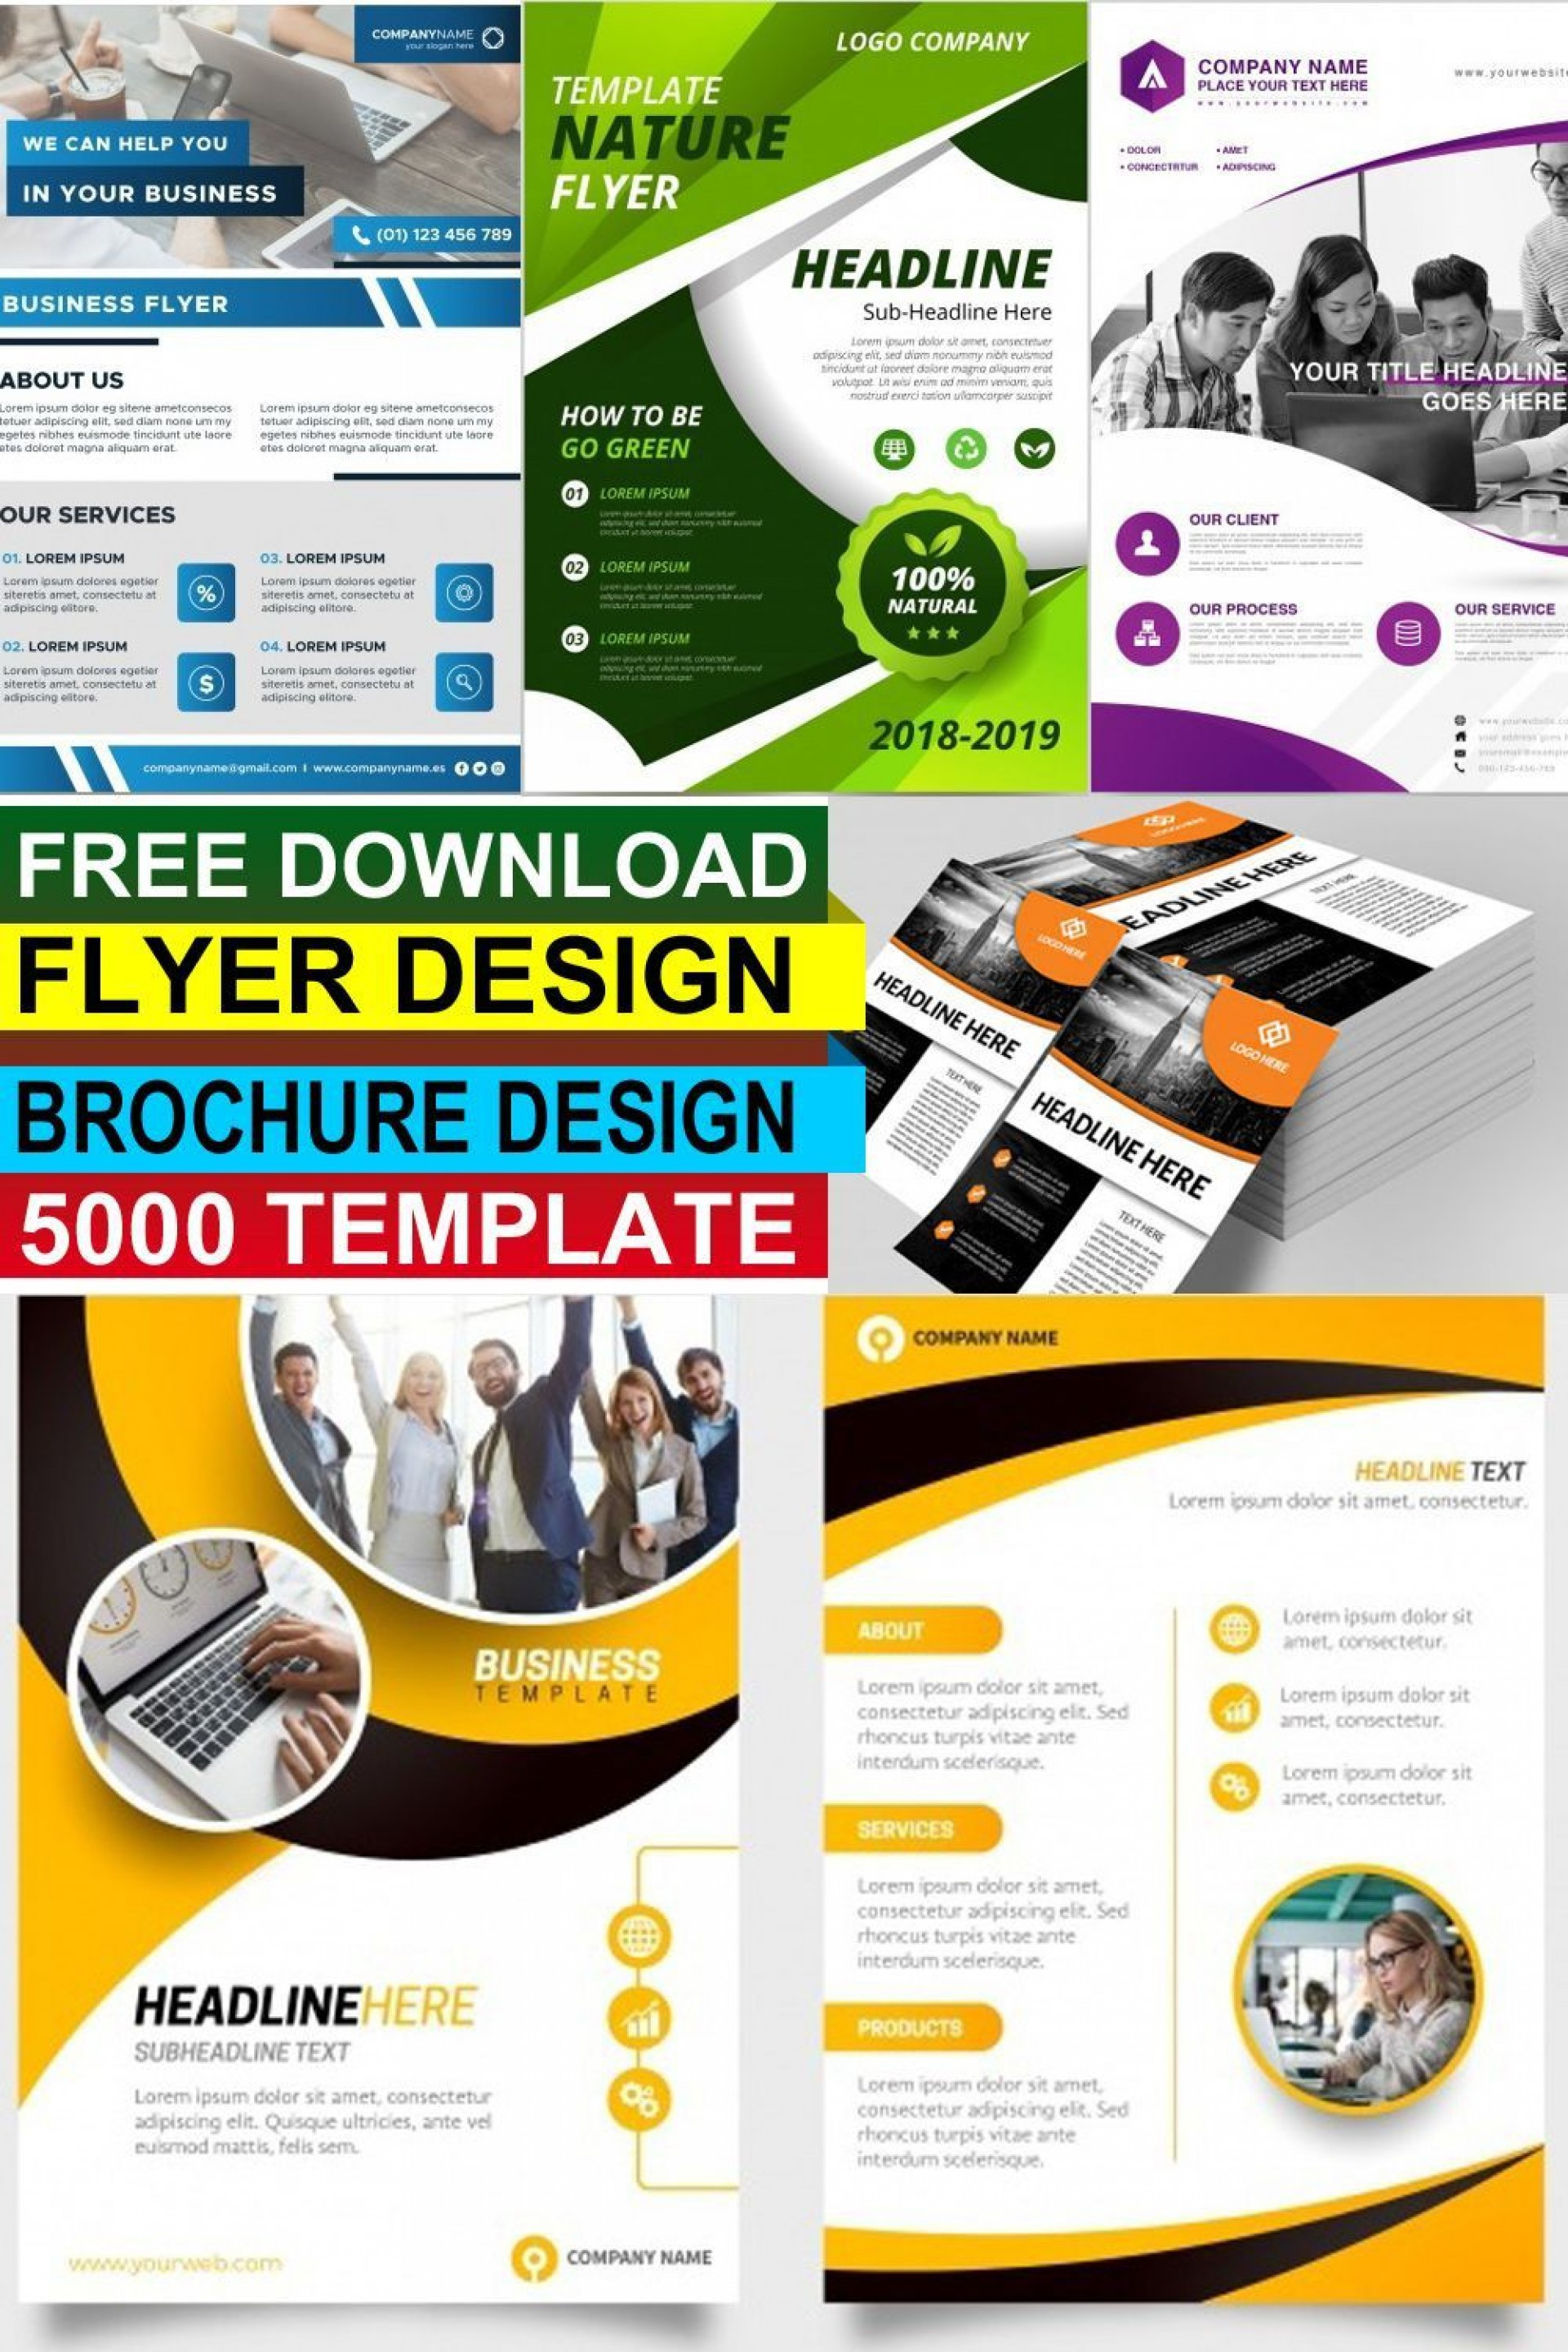 000 Fascinating Free Printable Flyer Template Highest Quality  Templates Christma Word Daycare1920